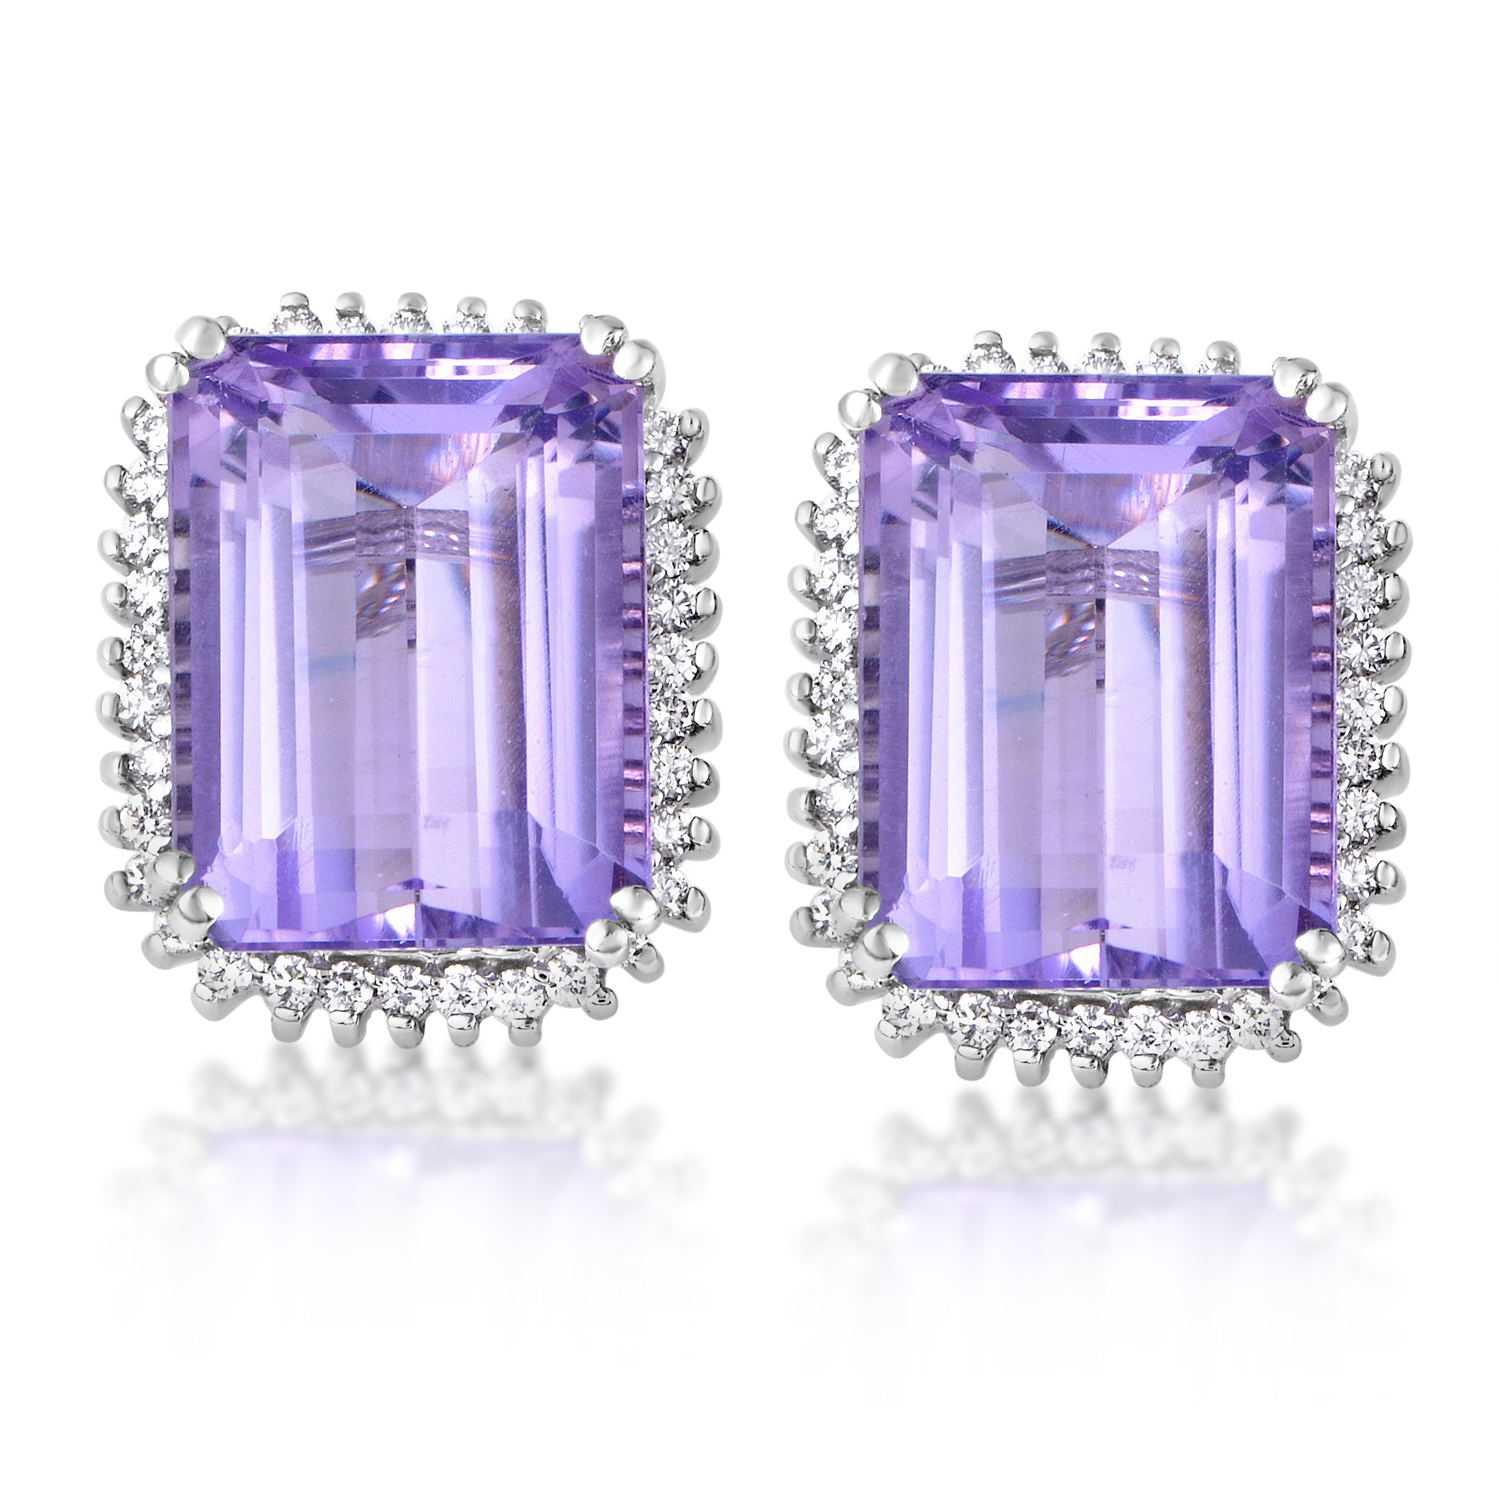 Women's 14K White Gold Diamond & Amethyst Stud Earring